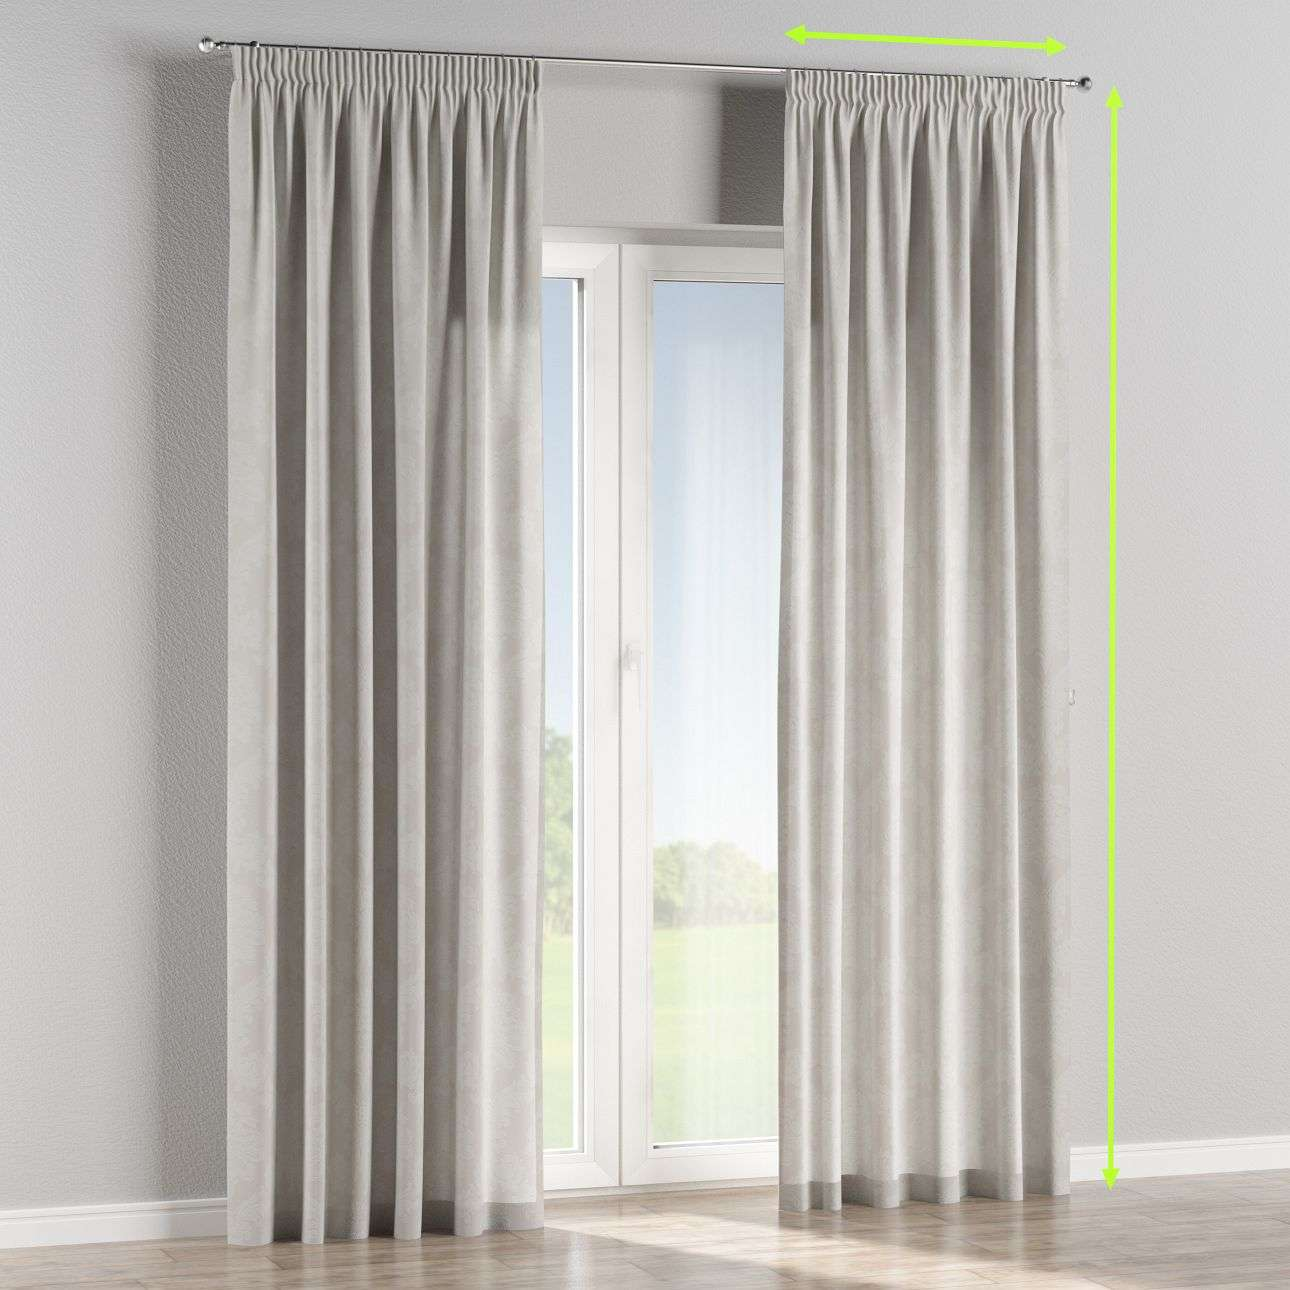 Pencil pleat lined curtains in collection Damasco, fabric: 613-81